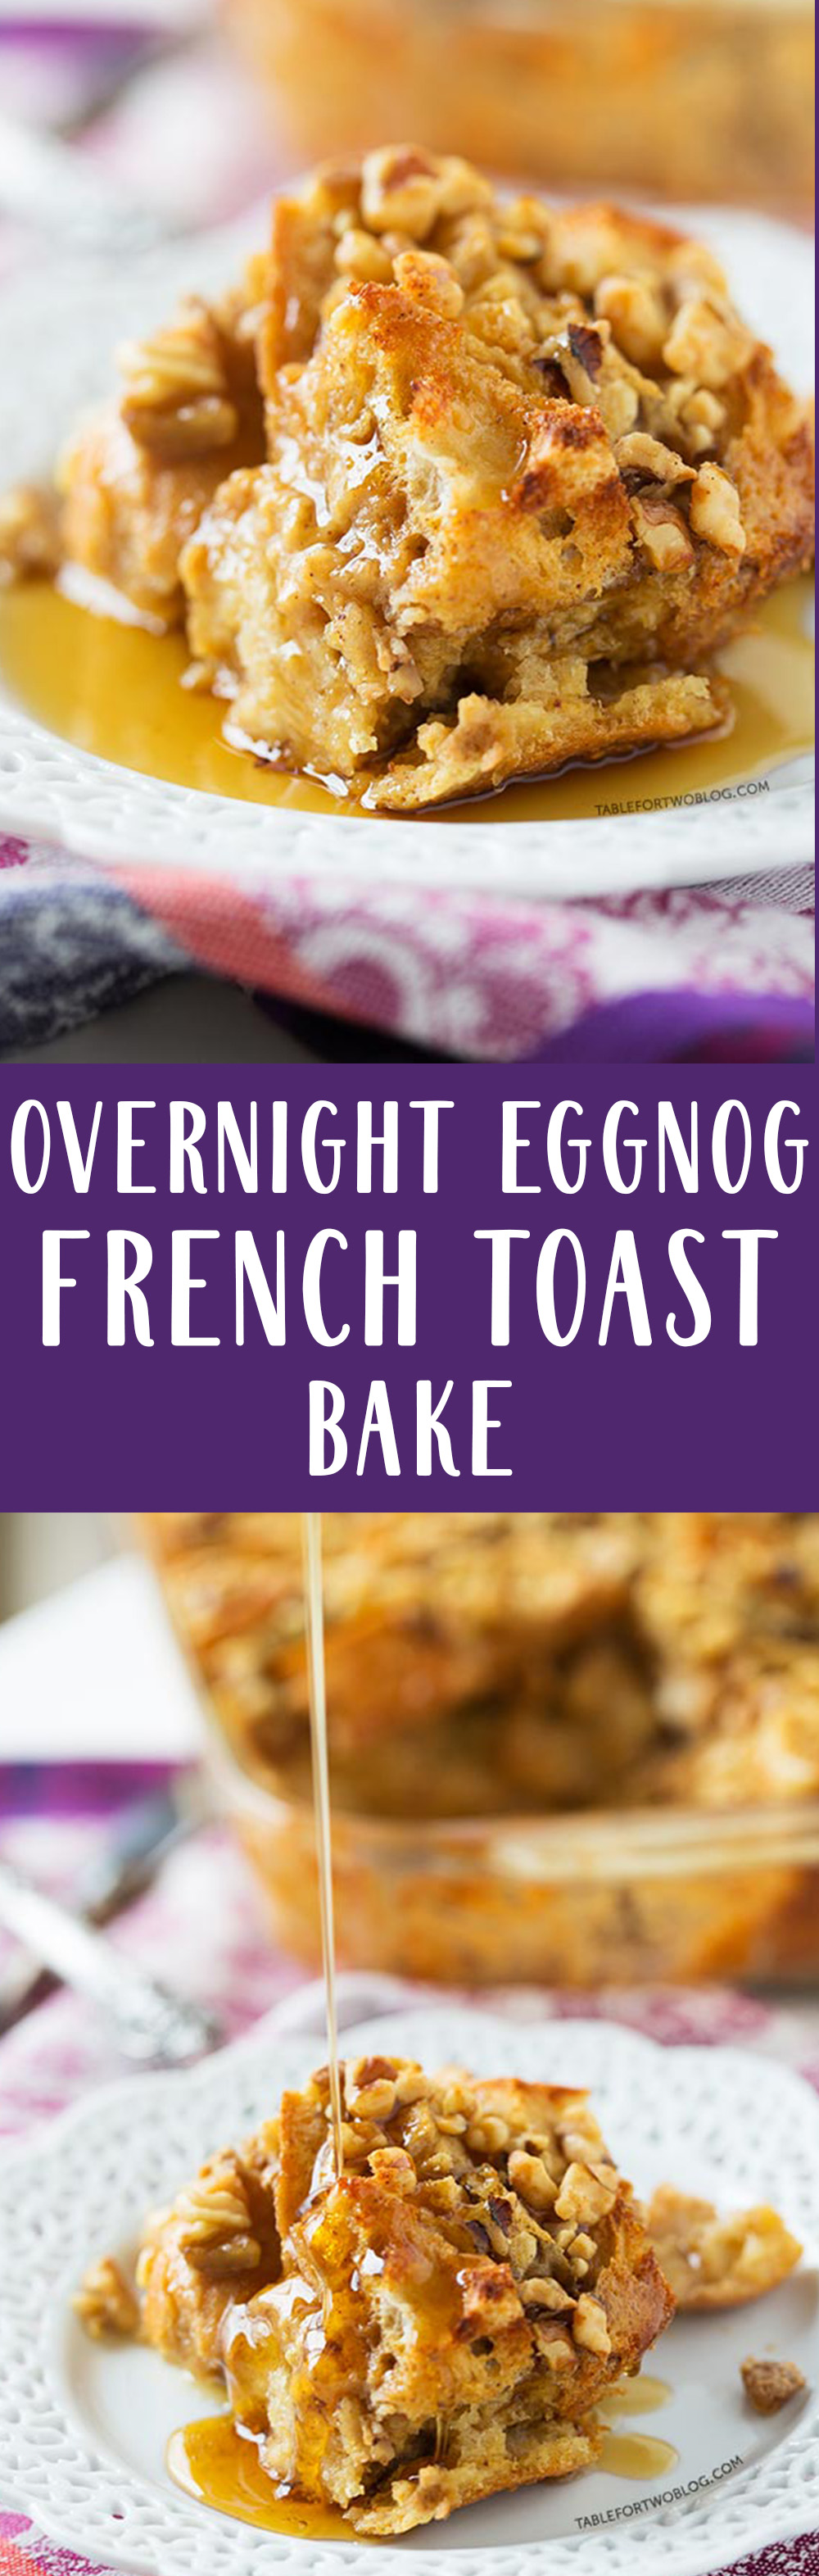 Overnight eggnog French toast bake is a breakfast crowd-pleaser! A few simple ingredients that you put together overnight and wake up the next morning to pop it in the oven. Your guests will think you slaved over this!